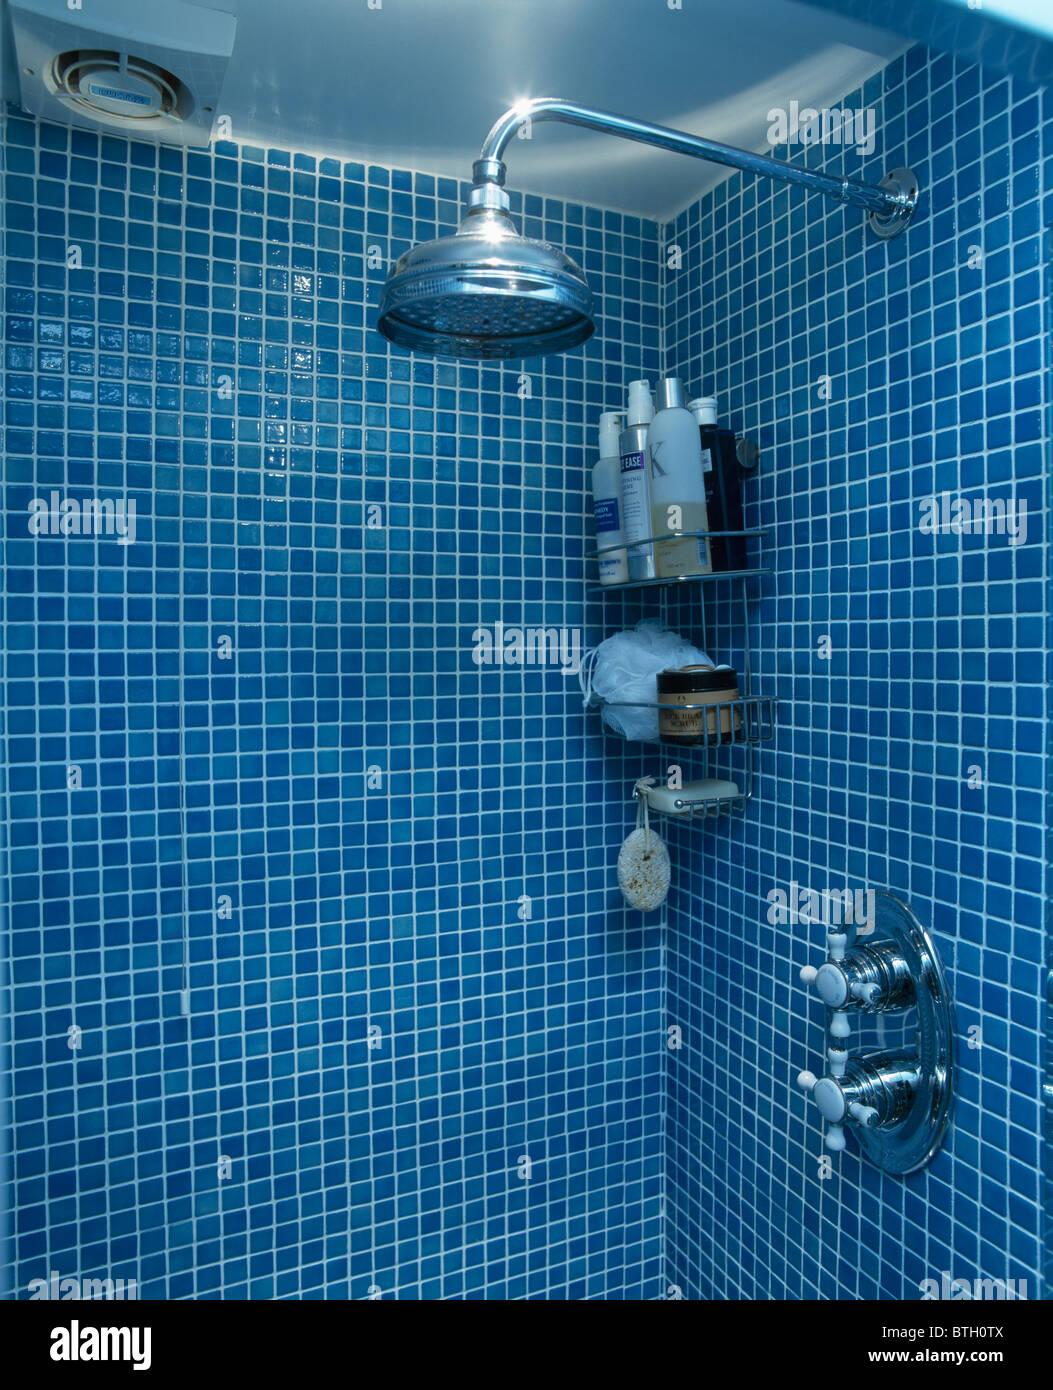 Mosaic Tile In Shower Stock Photos & Mosaic Tile In Shower Stock ...